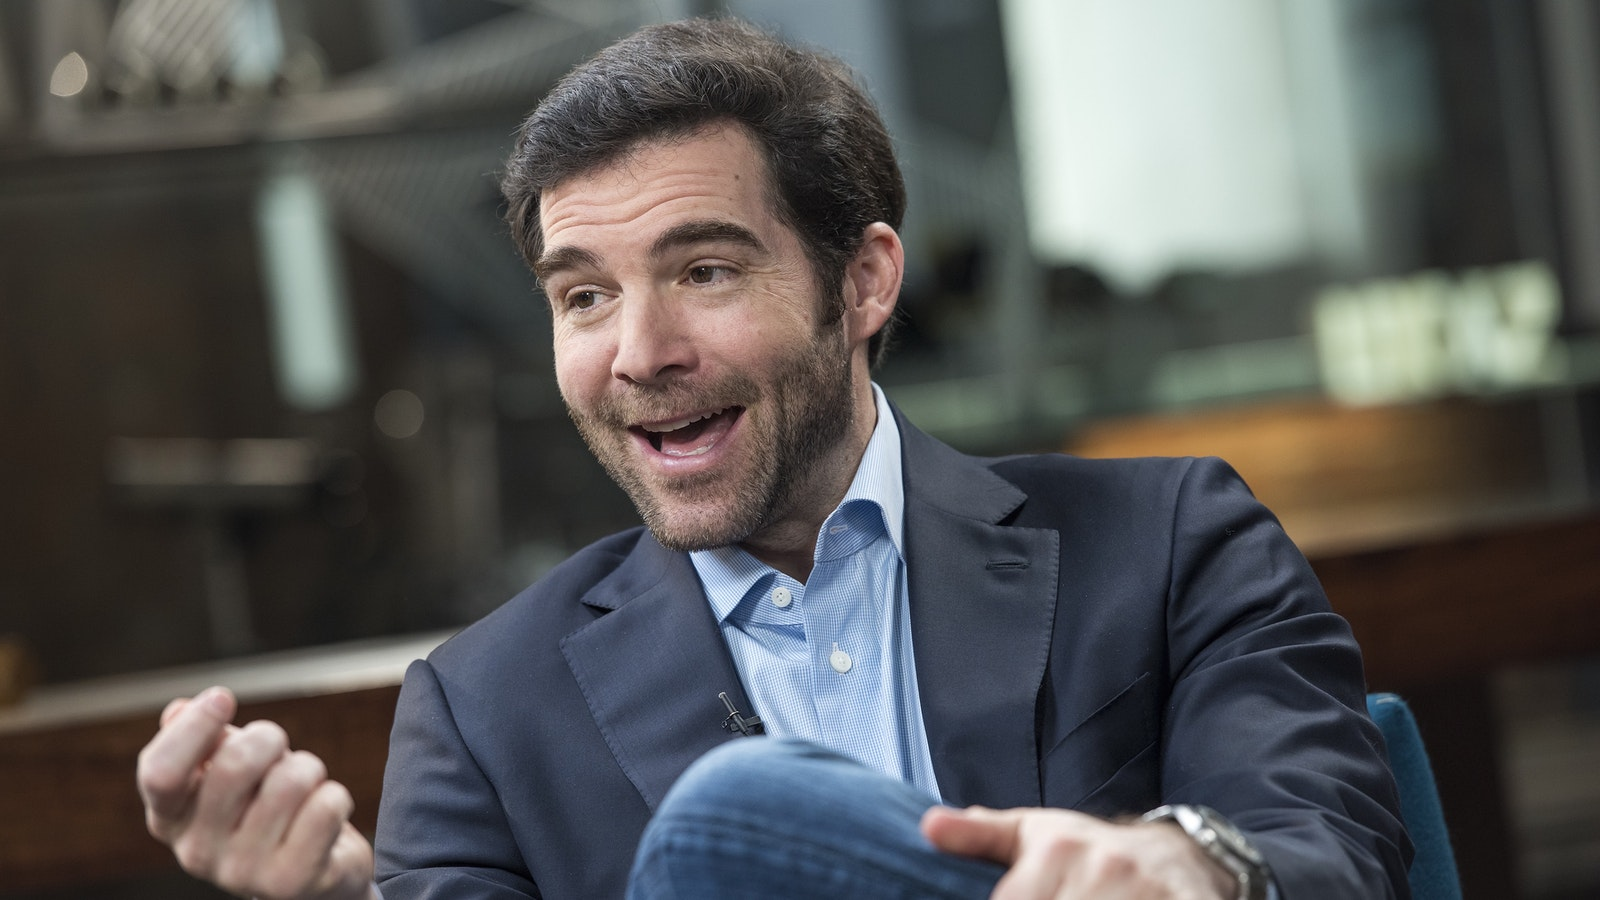 LinkedIn CEO Jeff Weiner. Photo by Bloomberg.